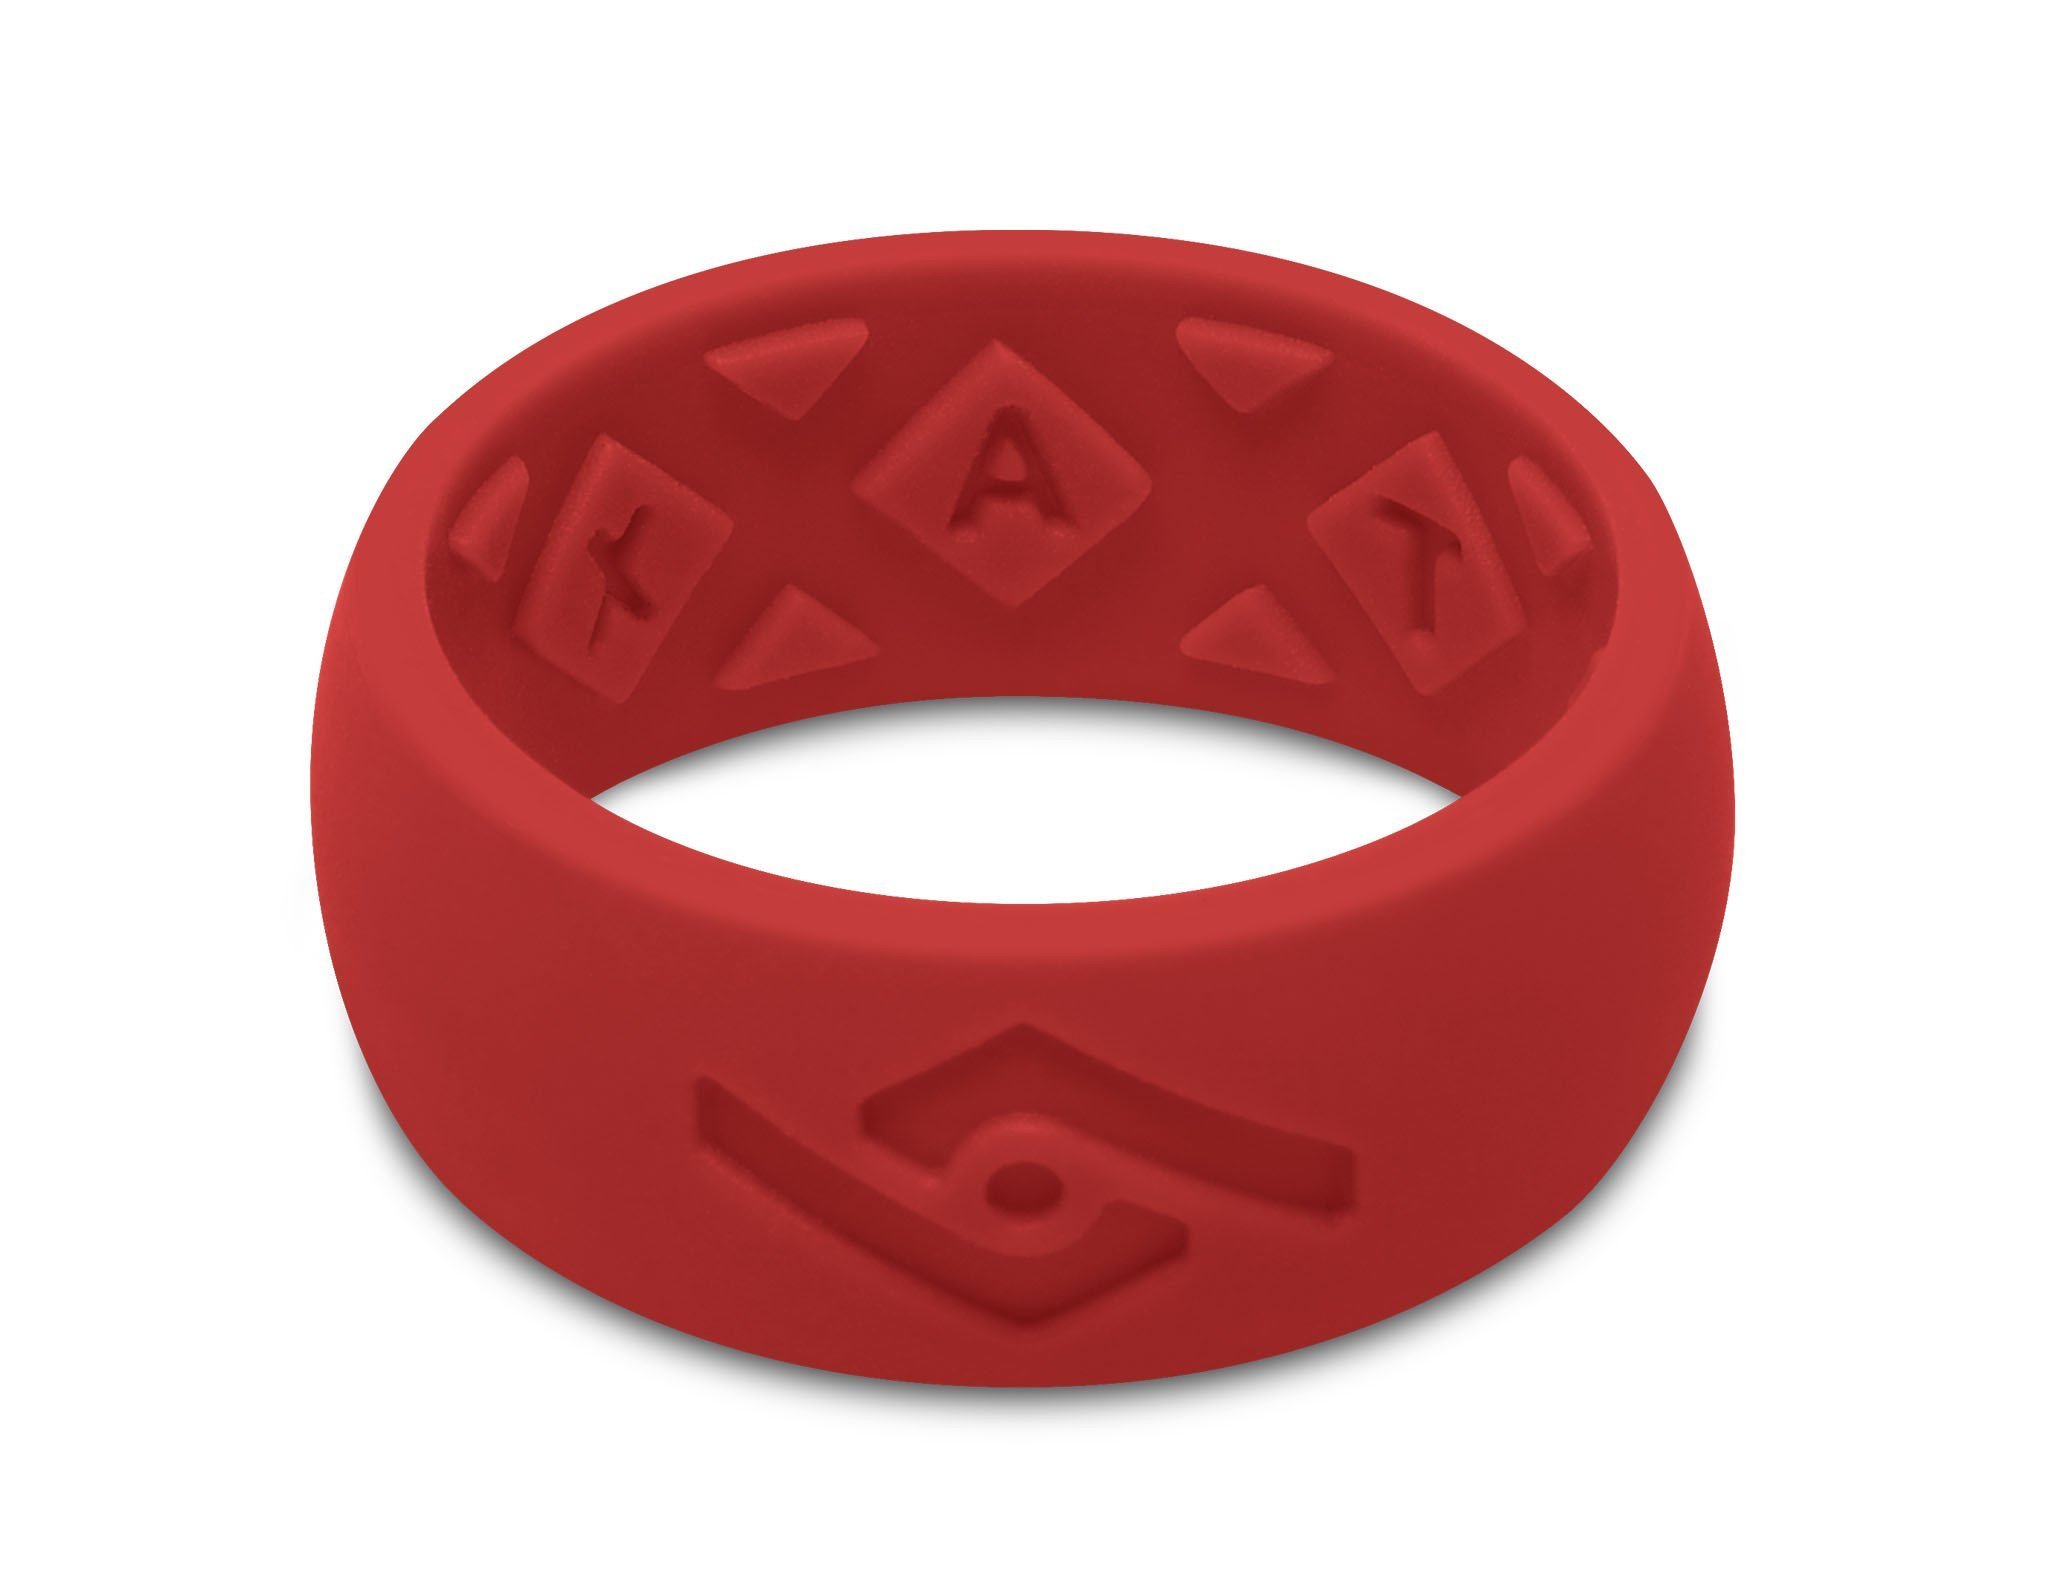 Fixate Designs Men's 2017 FX8 X-Vent Silicone Ring in Multiple Colors and Sizes